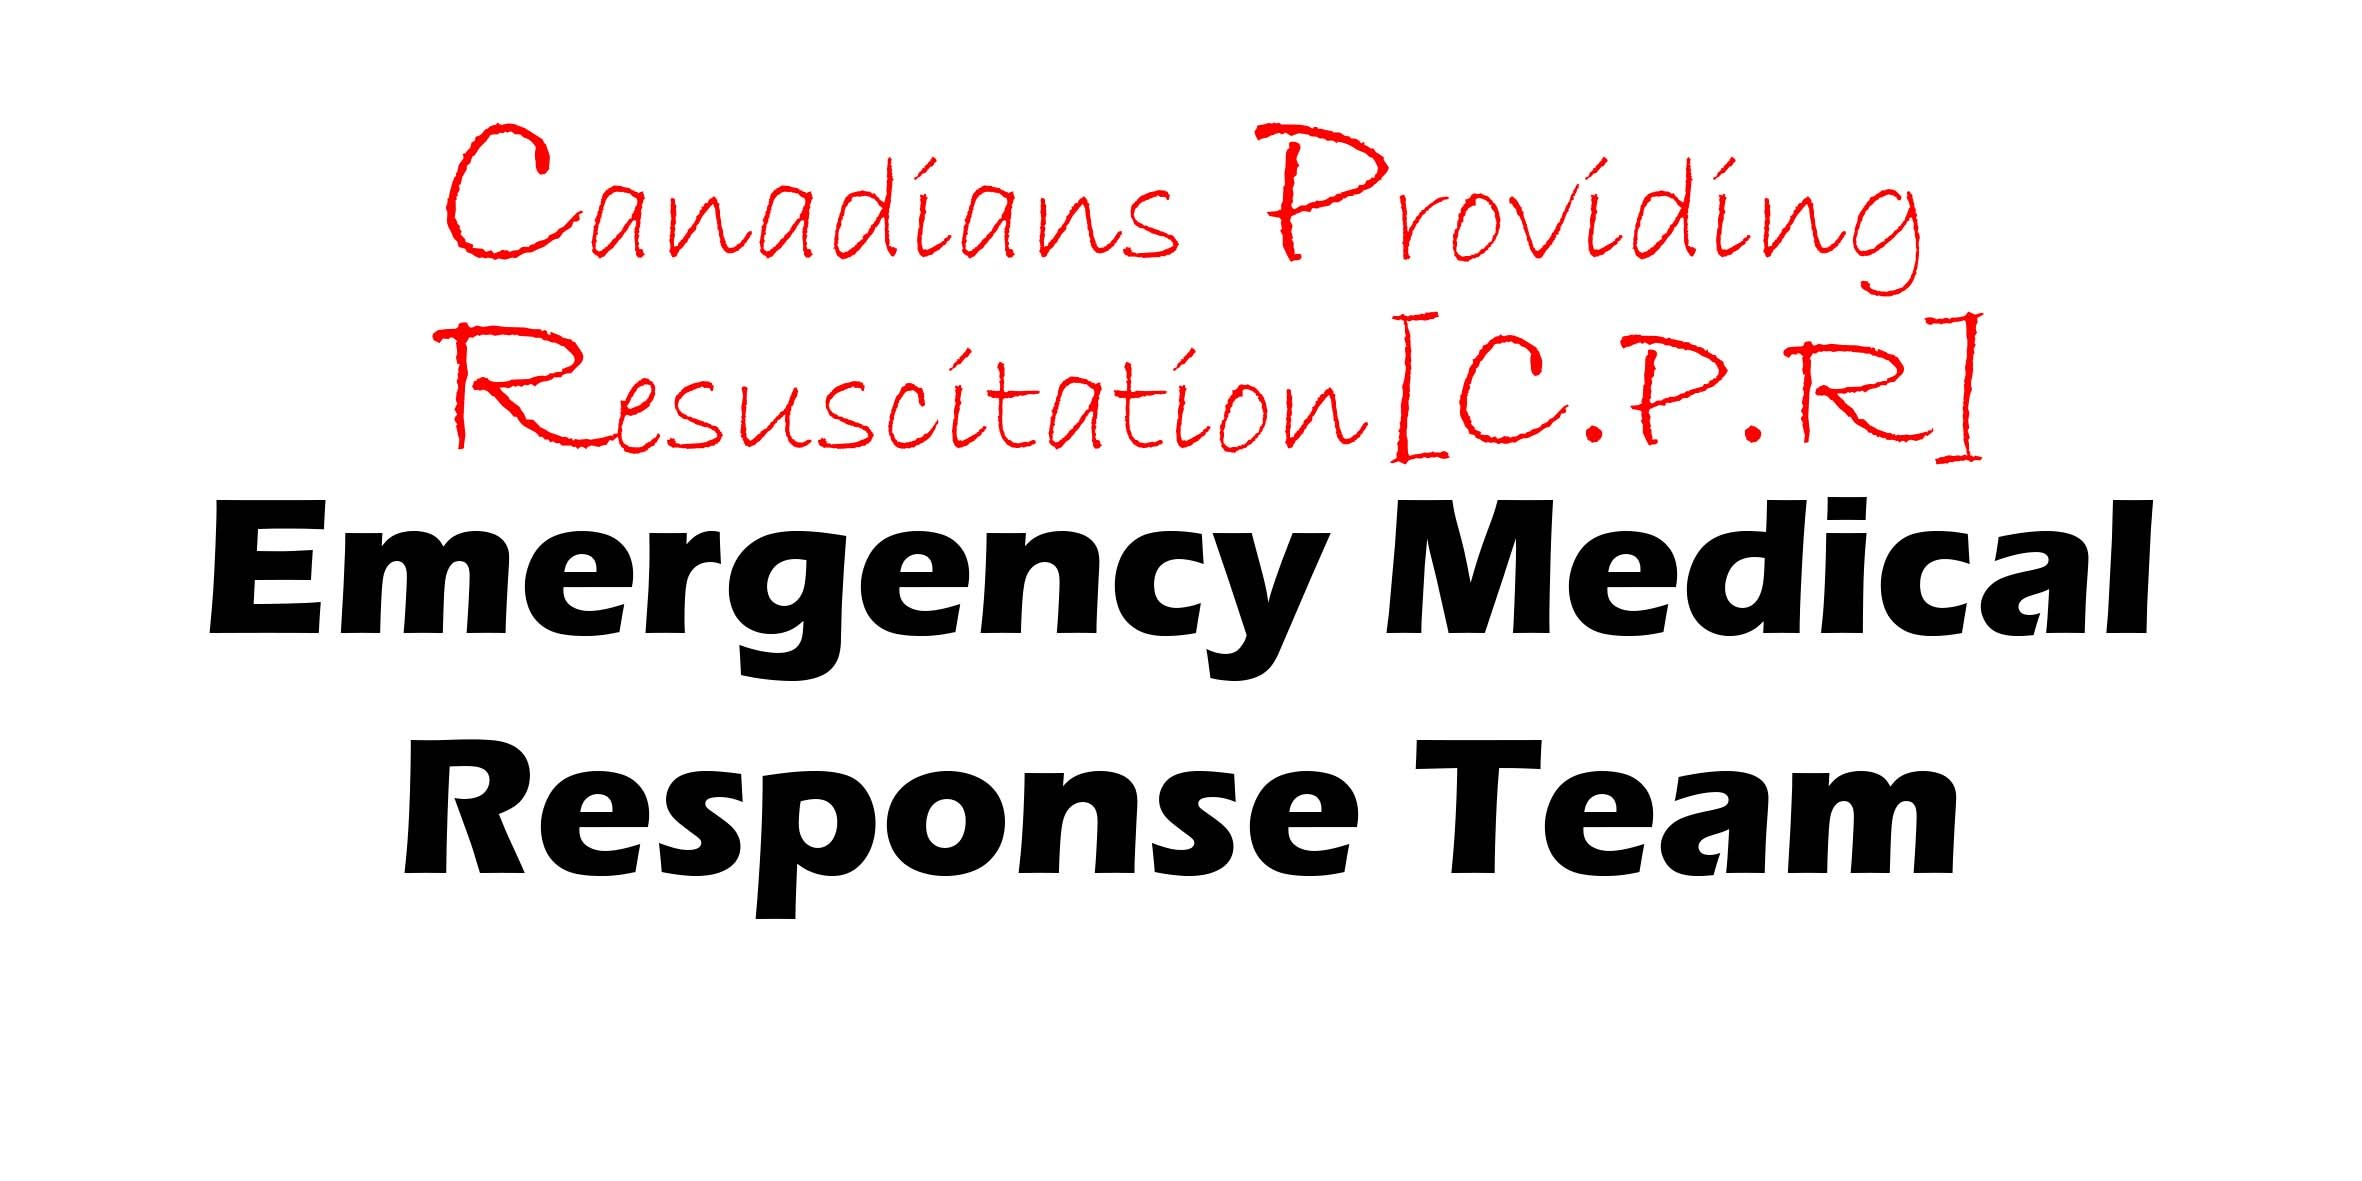 Hsfc Course Fees Canadians Providing Resuscitation Cpr